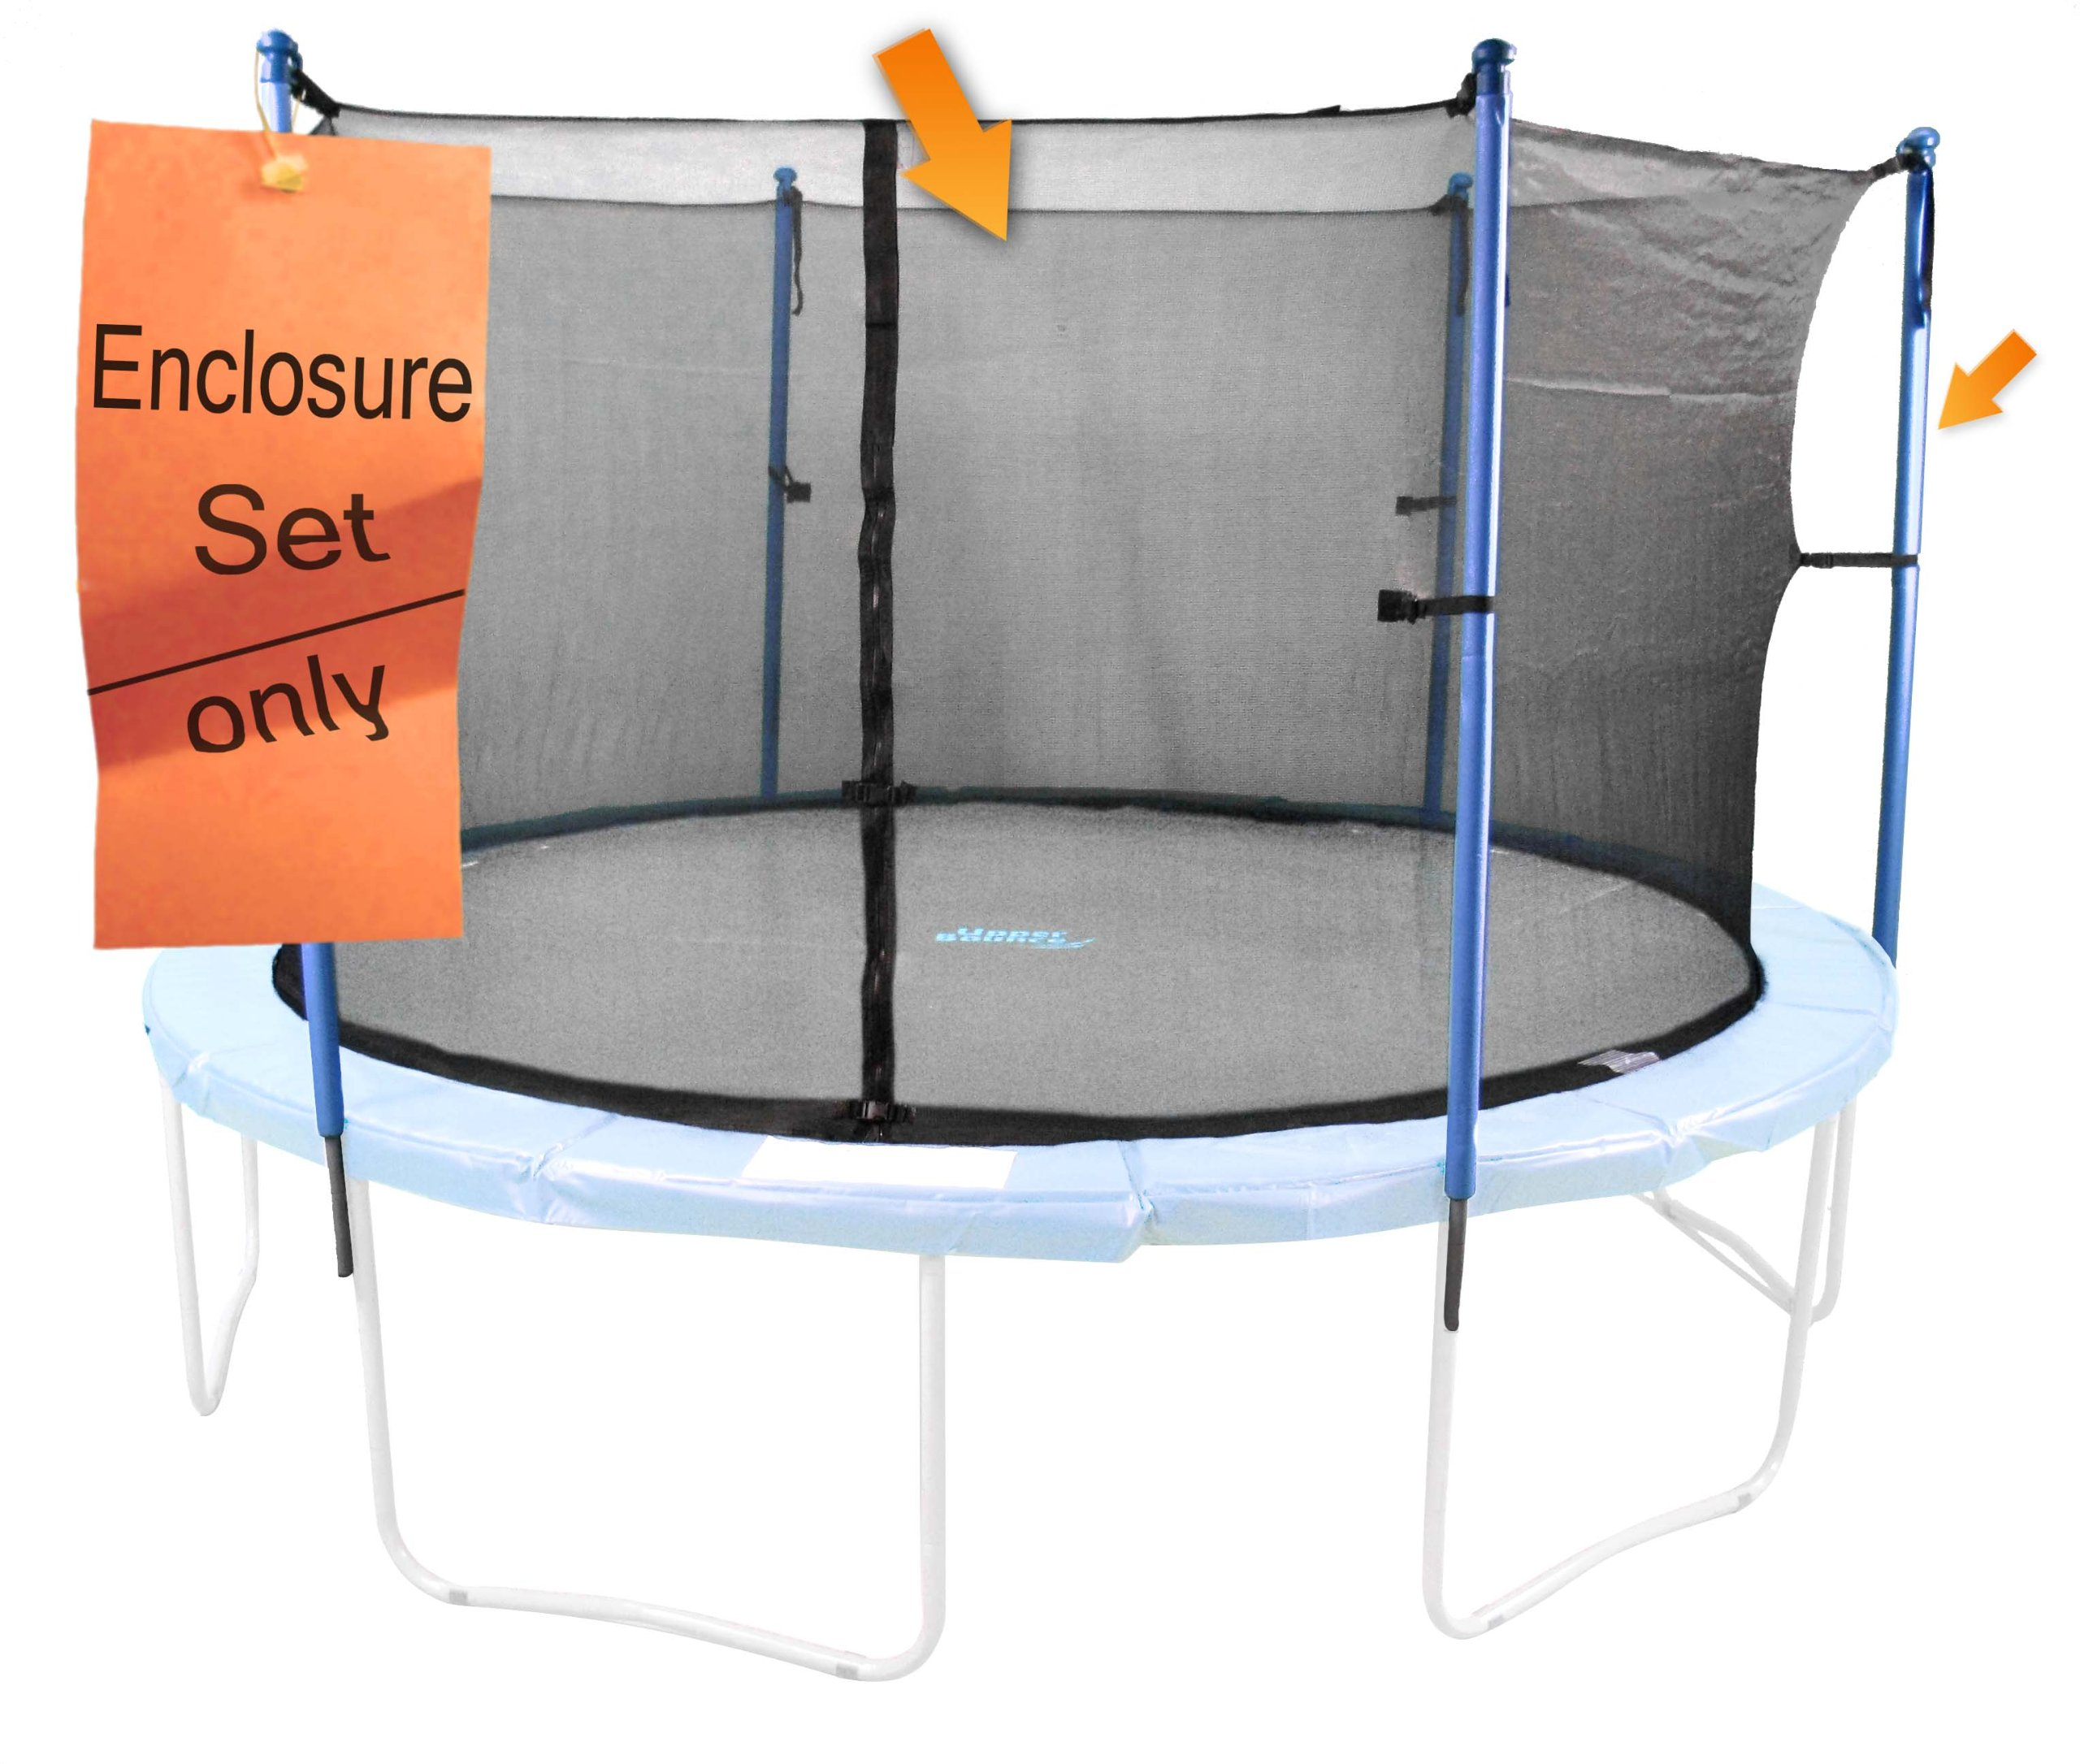 Upper Bounce 6 Pole Trampoline Enclosure Set to fit 16 FT. Trampoline Frames with Set of 3 or 6 W-Shaped Legs (Trampoline Not Included) by Upper Bounce